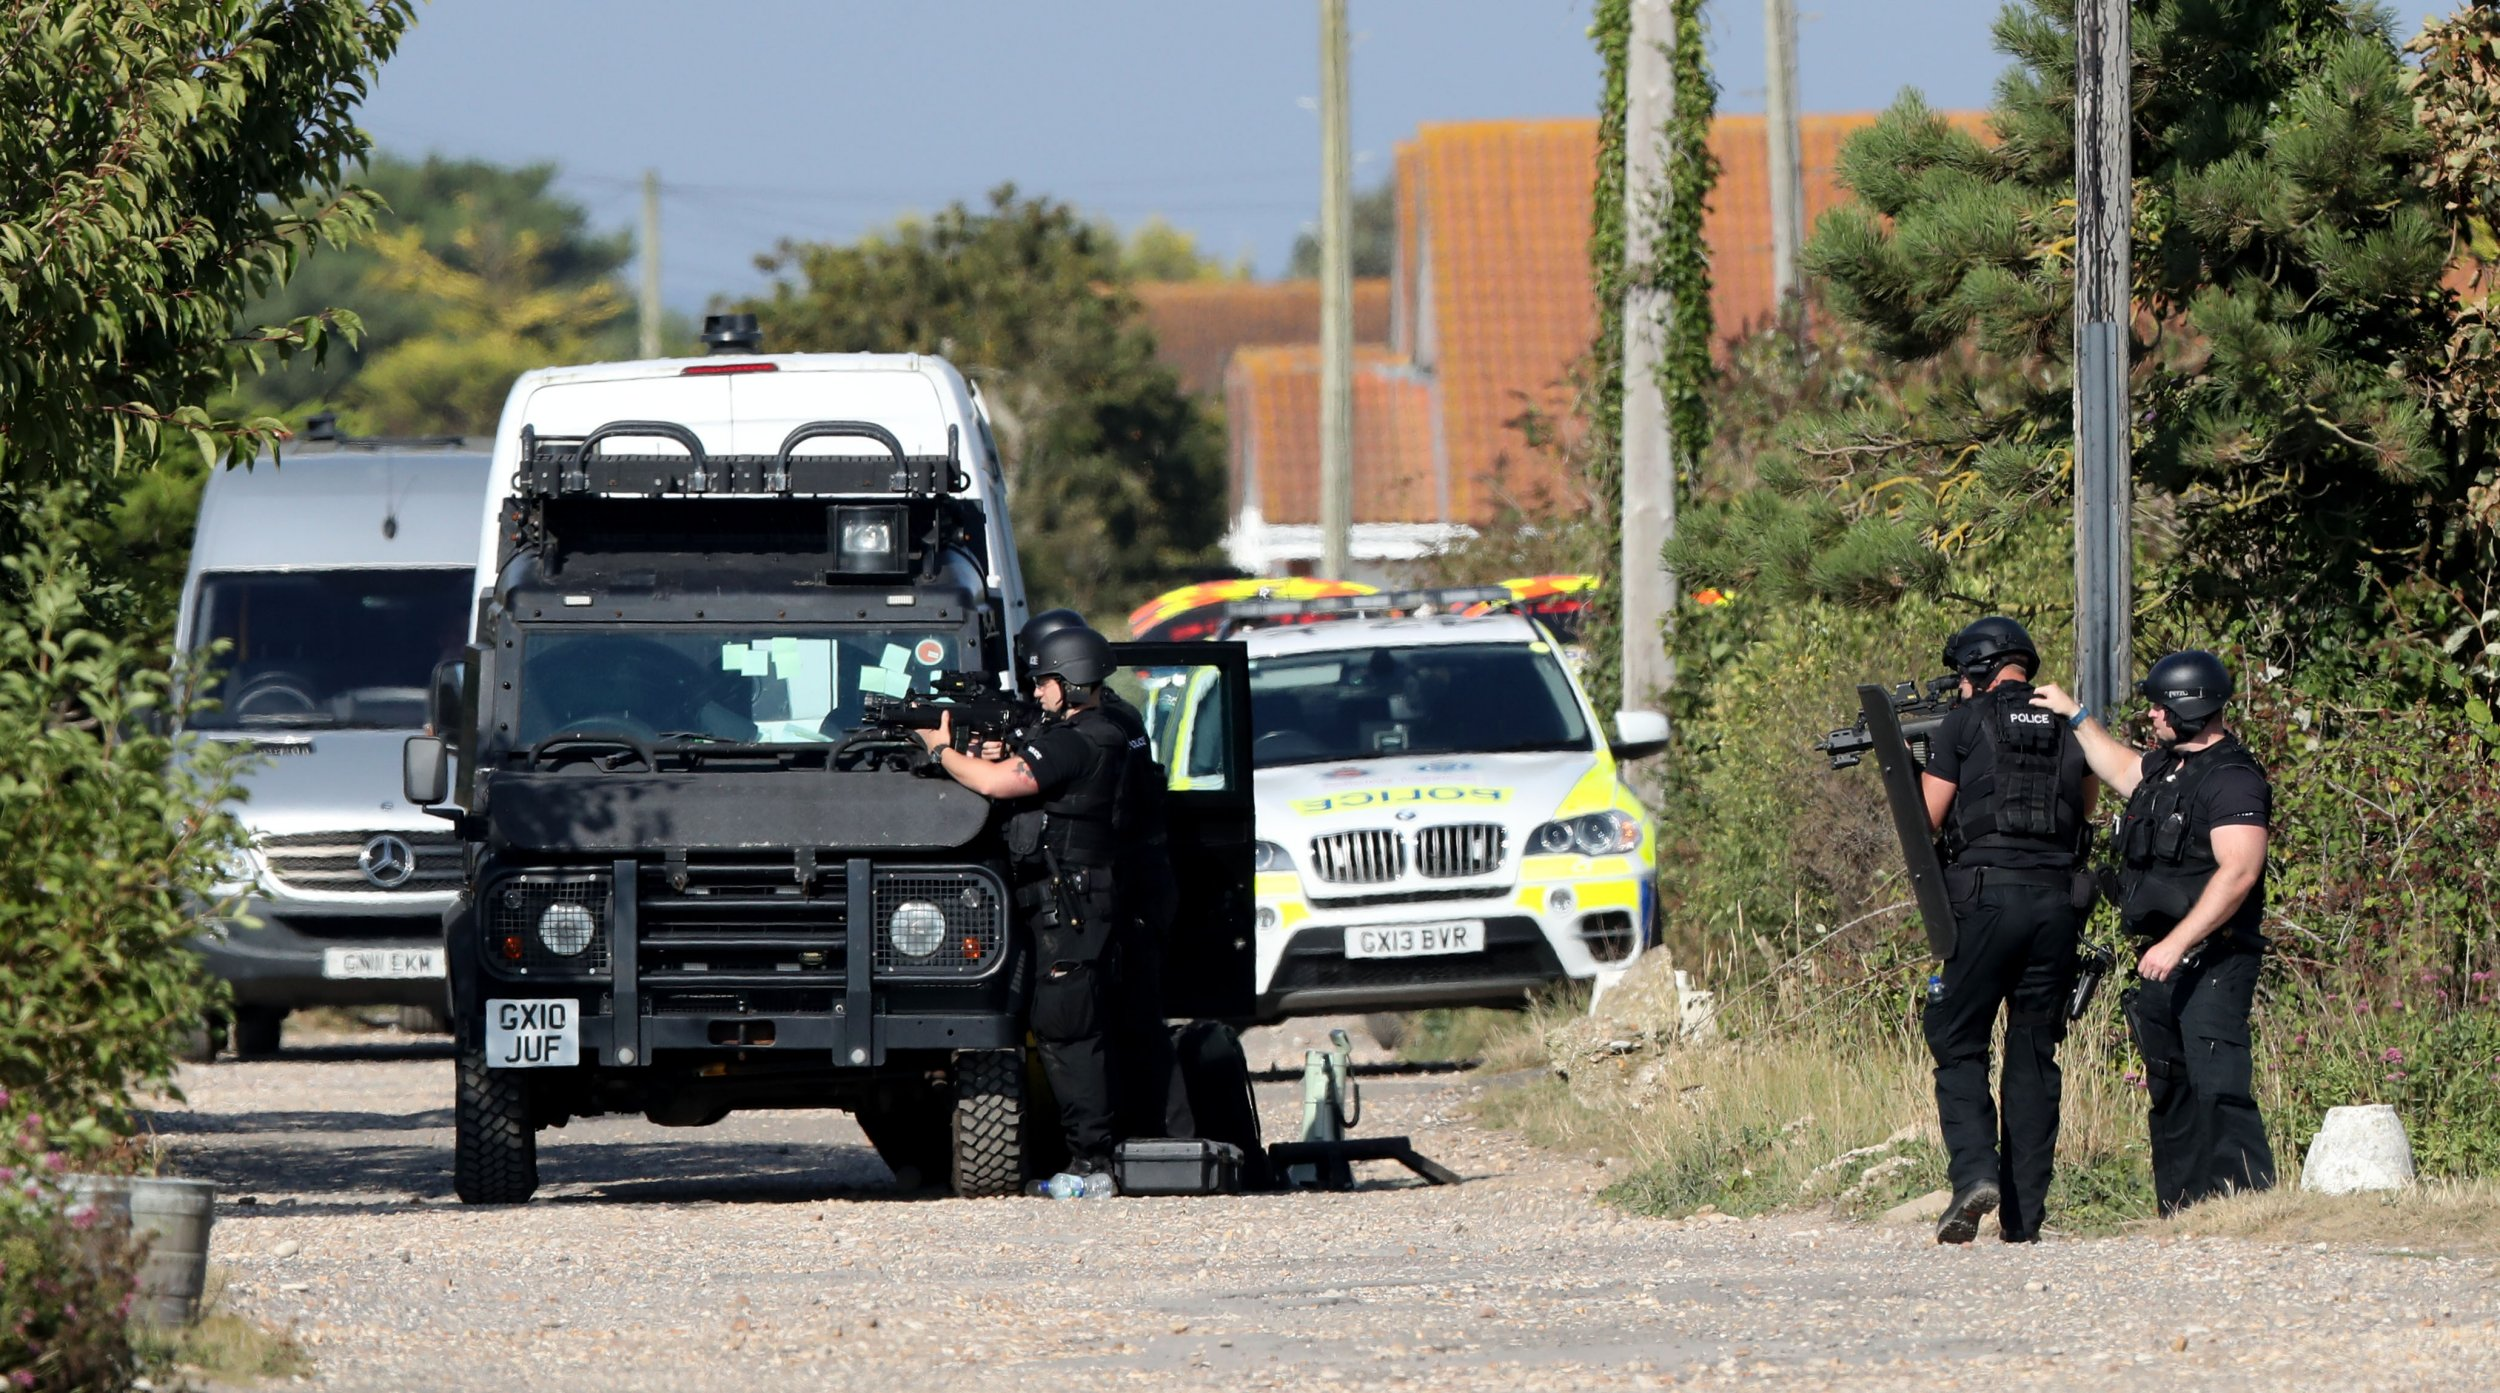 Armed police at the scene on Harbour Road, Pagham, West Sussex, where they are in a stand-off with a 72-year-old man who is thought to have a gun. PRESS ASSOCIATION Photo. Picture date: Monday August 29, 2016. Sussex Police, who have cordoned off the property and closed the road, said negotiators are continuing to make contact with the man. Emergency services are on stand-by. See PA story POLICE Pagham. Photo credit should read: Andrew Matthews/PA Wire